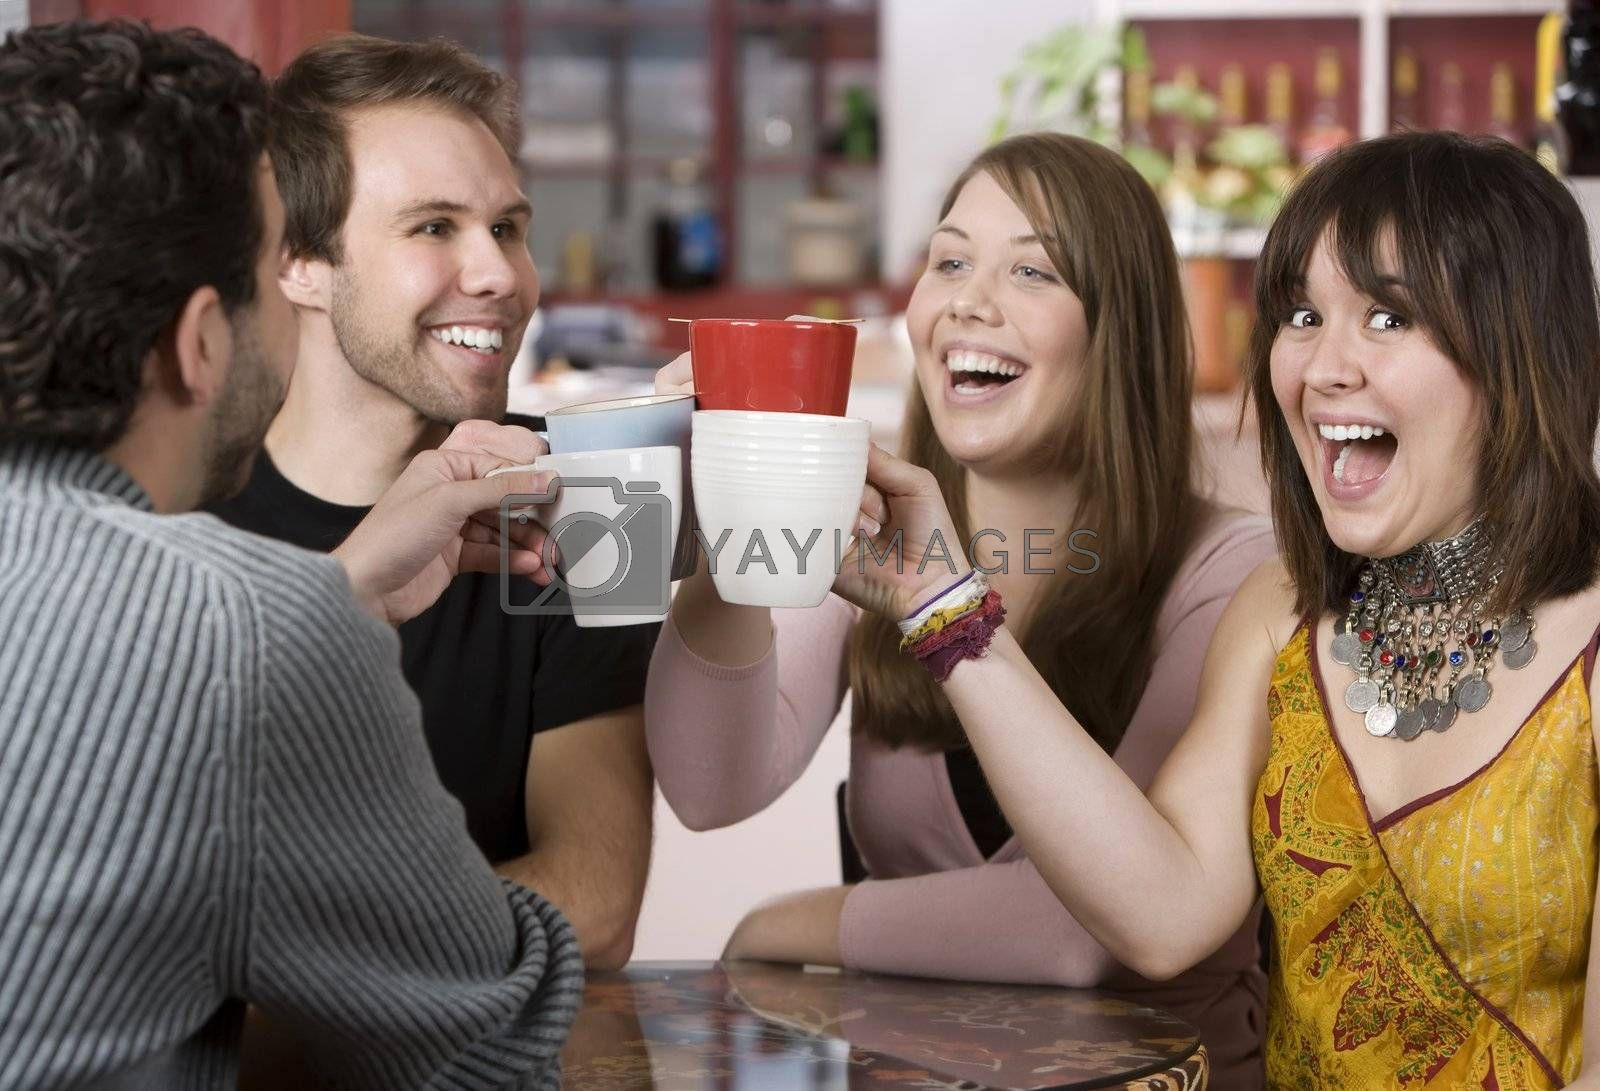 Royalty free image of Young Friends Toasting with Coffee Cups by Creatista